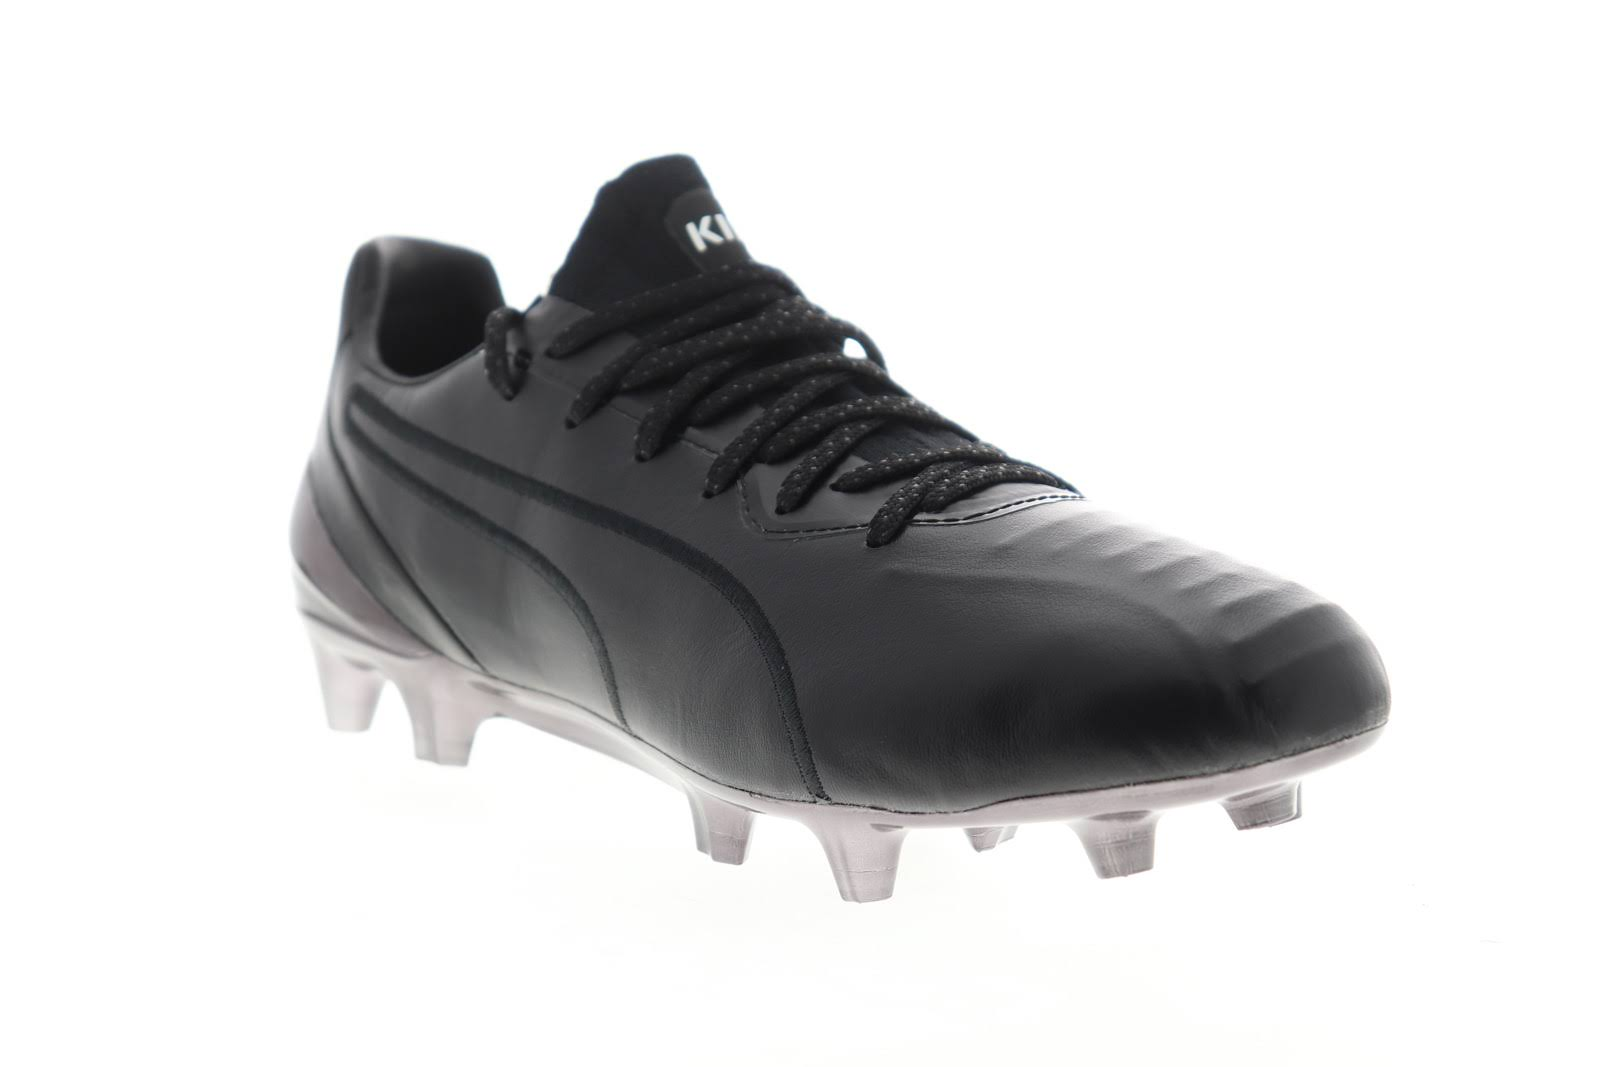 Puma King Platinum FG/AG - Black